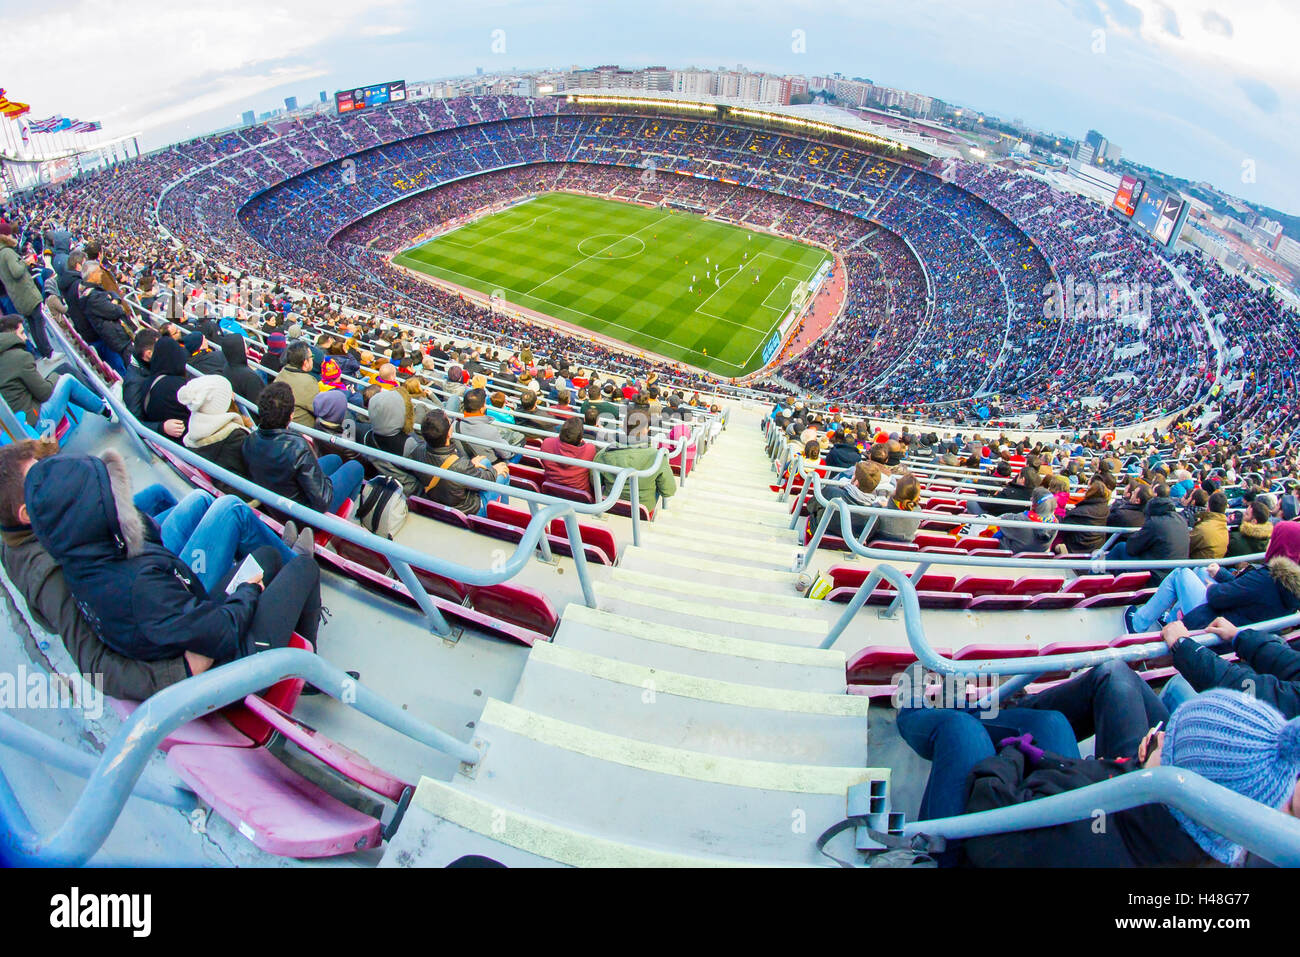 BARCELONA - FEB 21: A general view of the Camp Nou Stadium. - Stock Image